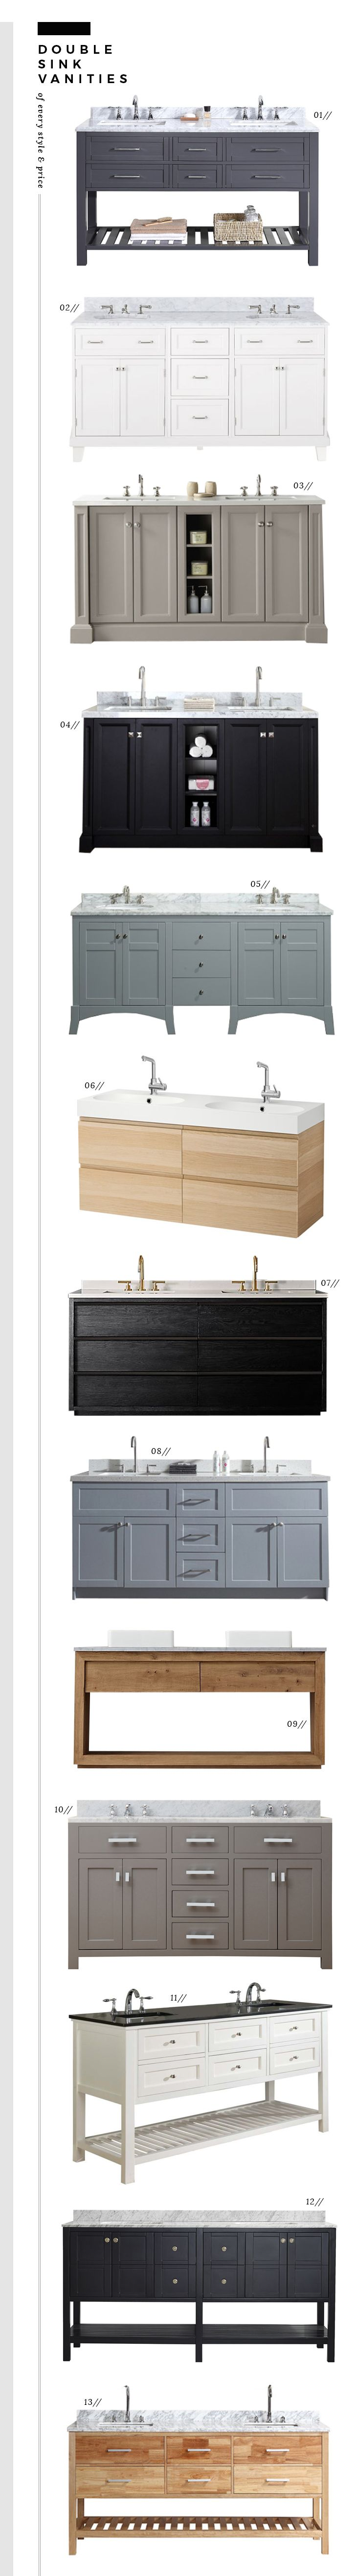 Double Bathroom Sinks 17 Best Ideas About Double Sink Bathroom On Pinterest Double